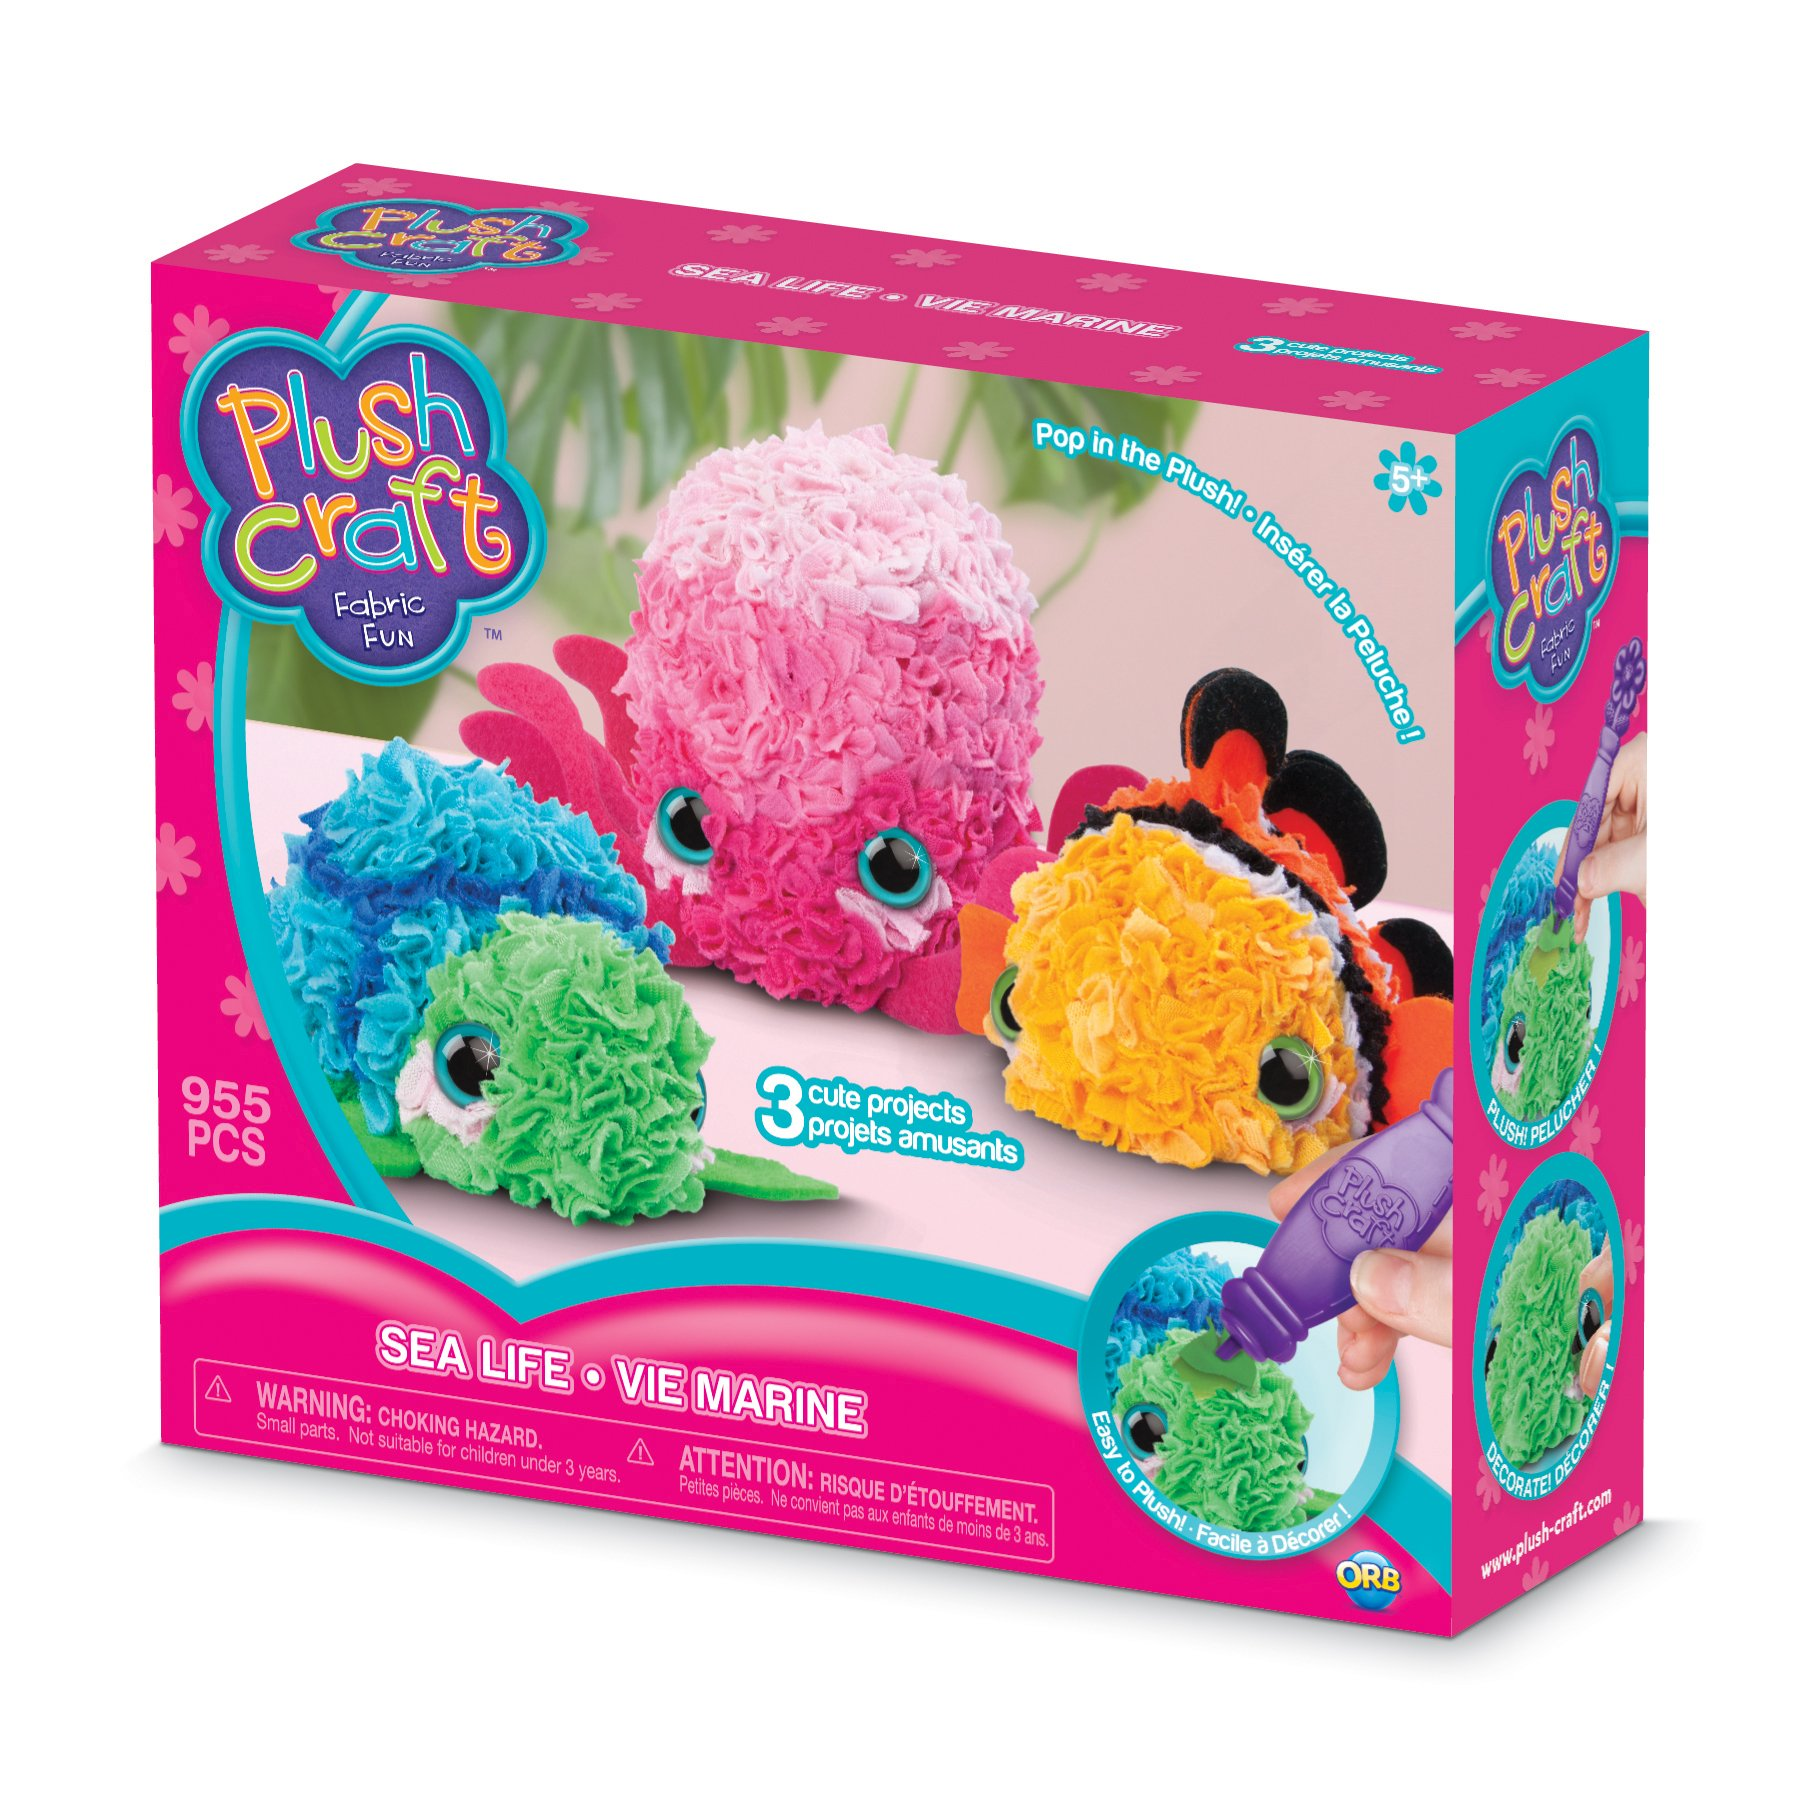 THE ORB FACTORY LIMITED 10027971 Plush Craft 3D Sea Life Mini, 10'' x 3'' x 8.5'', Pink/Green/Orange/Blue/White/Black by THE ORB FACTORY LIMITED